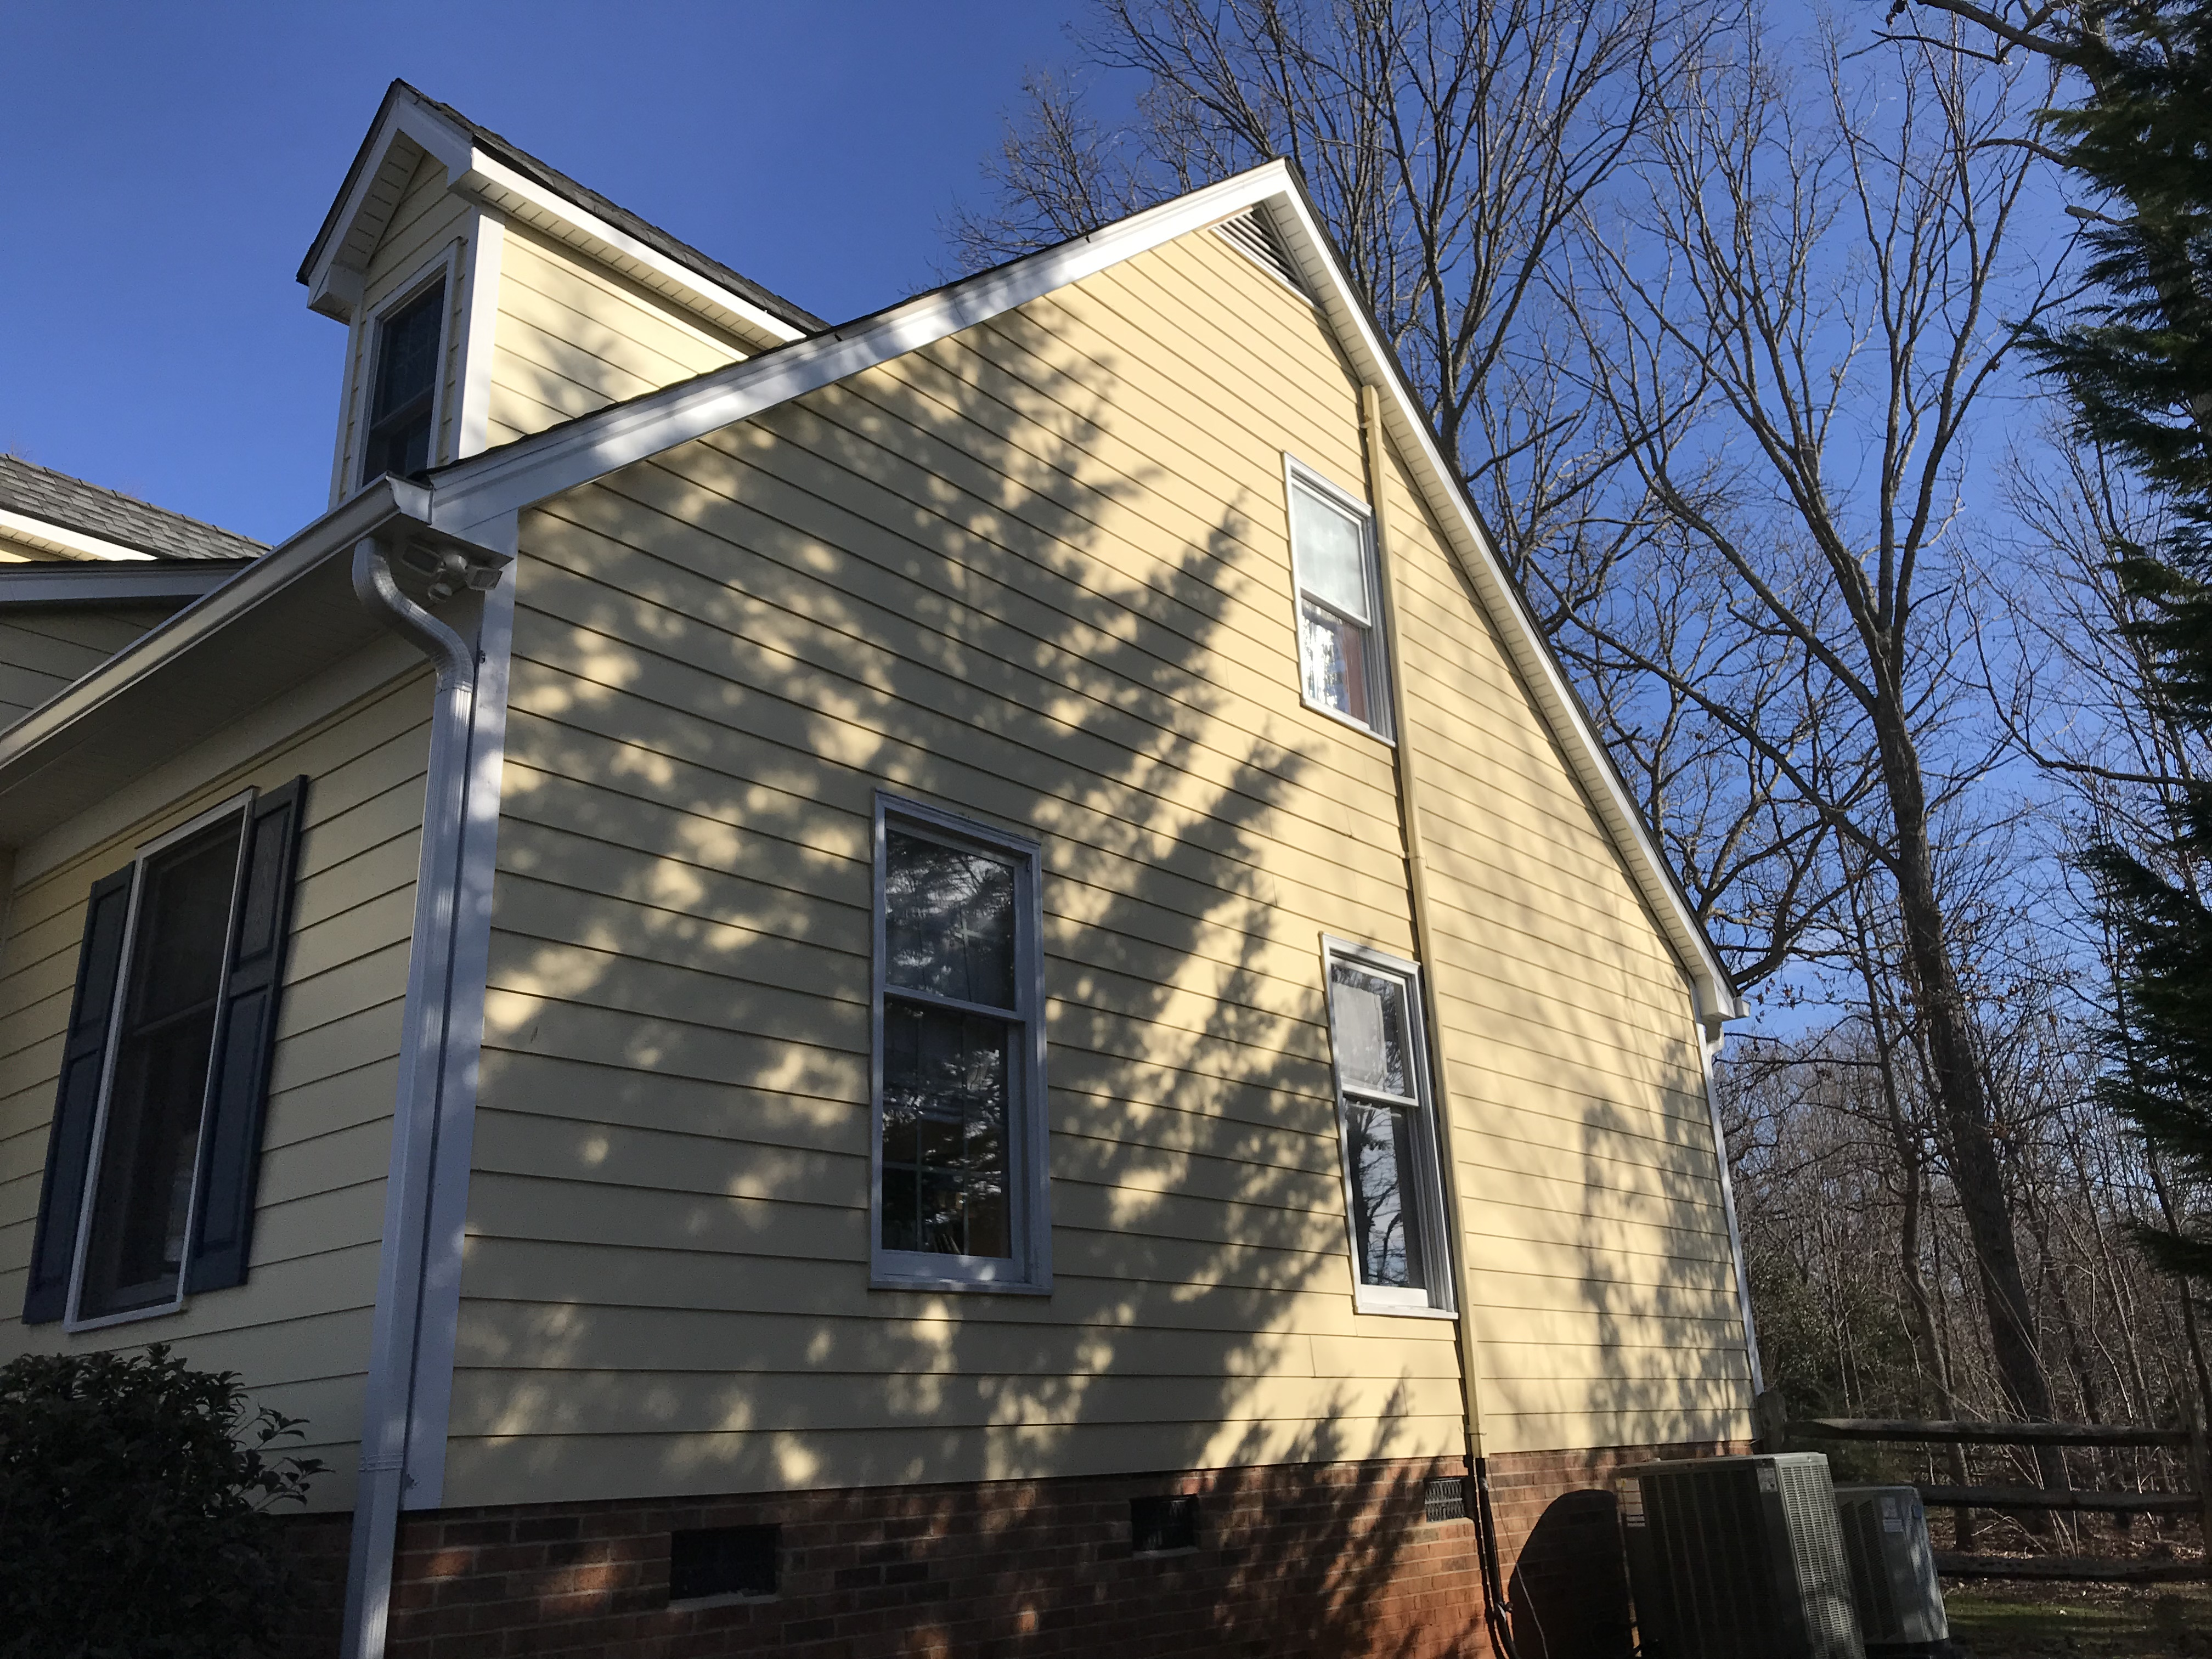 Charlotte Nc Home Covered In Hardie Lap Siding Hatch Homes